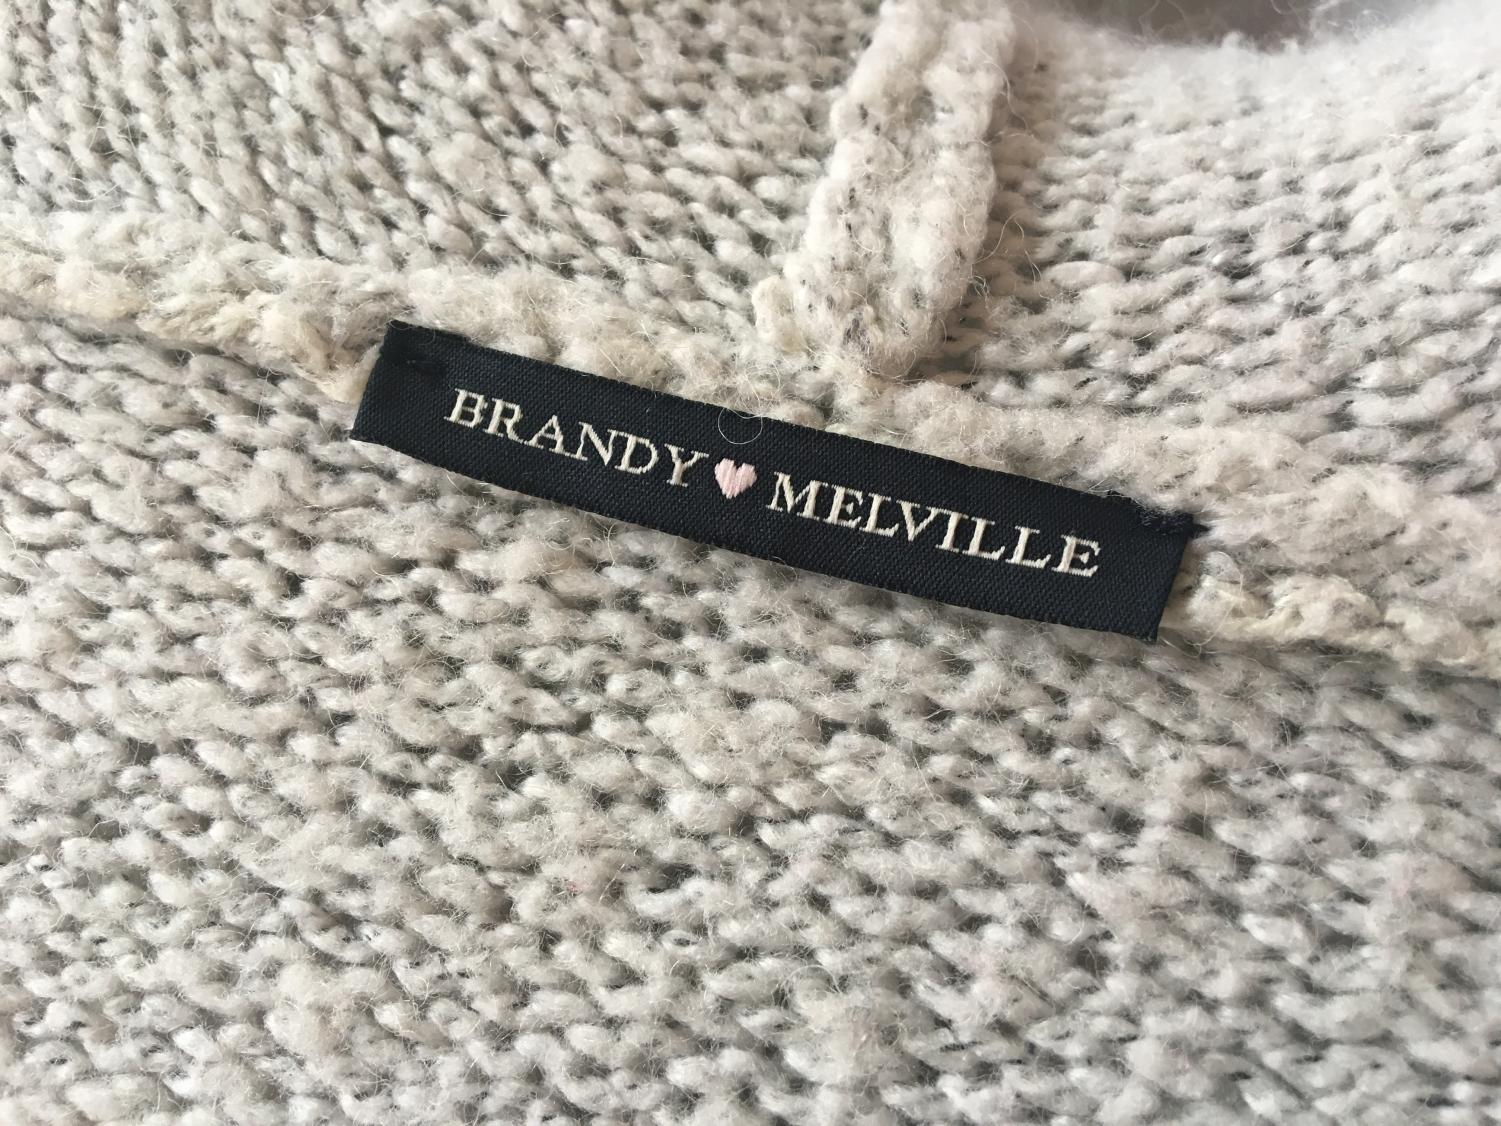 Brands such as Brandy Melville use a one-size-fits-all sizing system on many of their clothes, but this doesn't work for everyone.